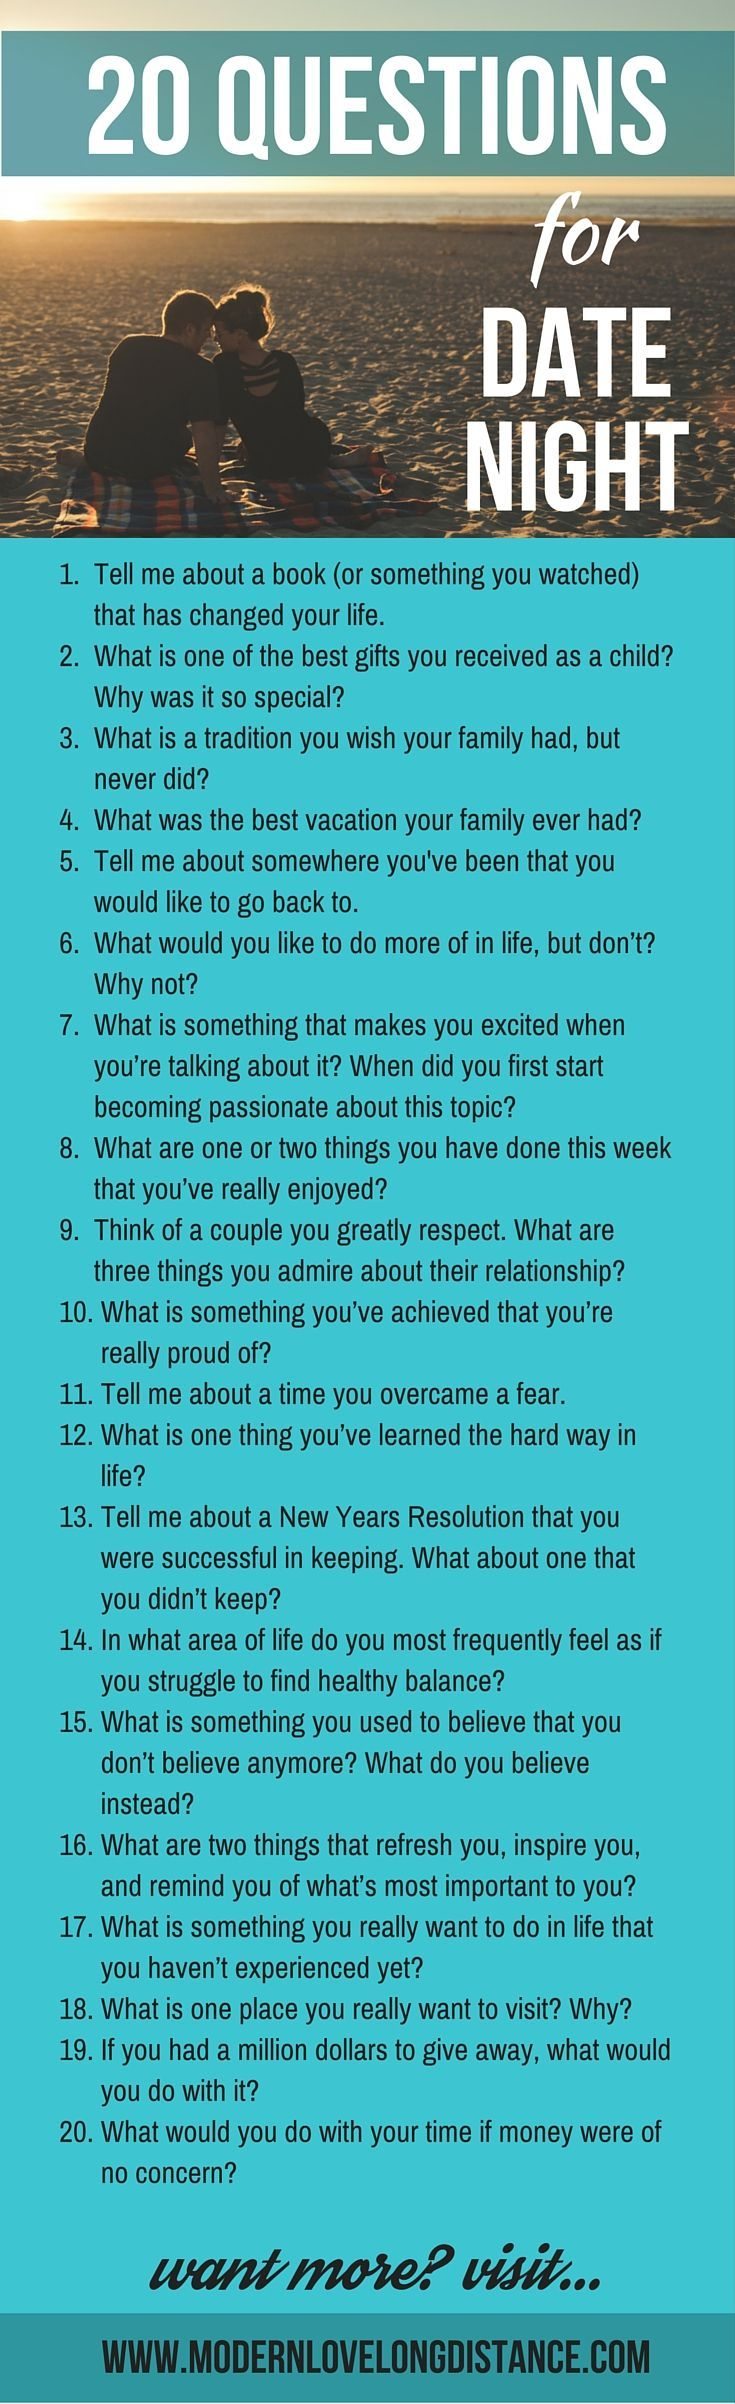 20 questions new relationship